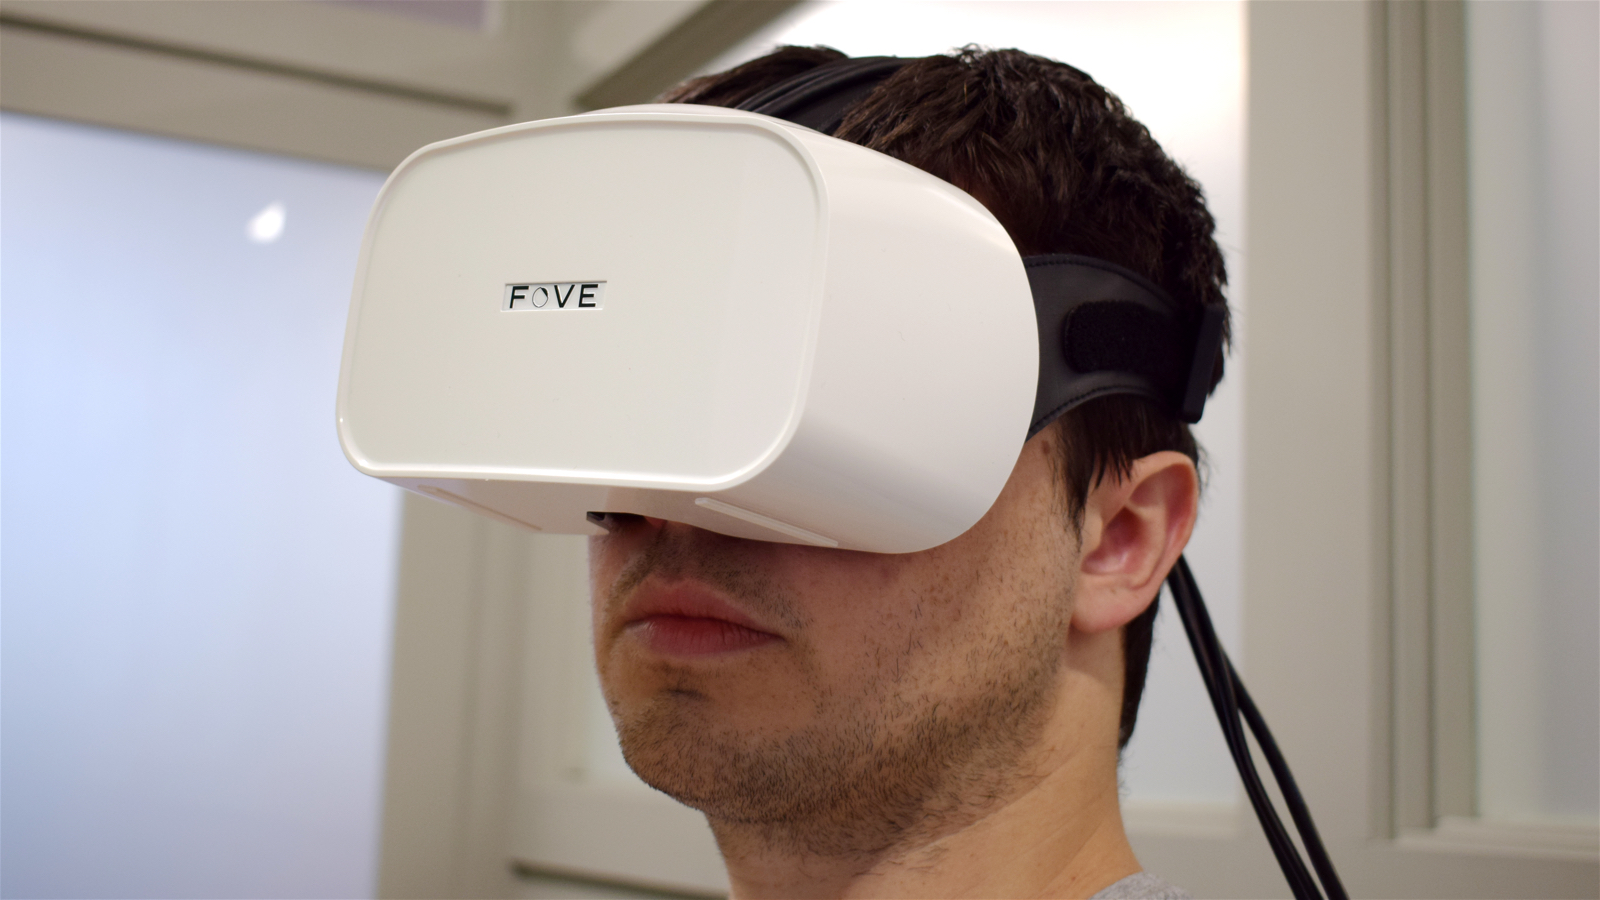 Hands on with the eye-tracking Fove